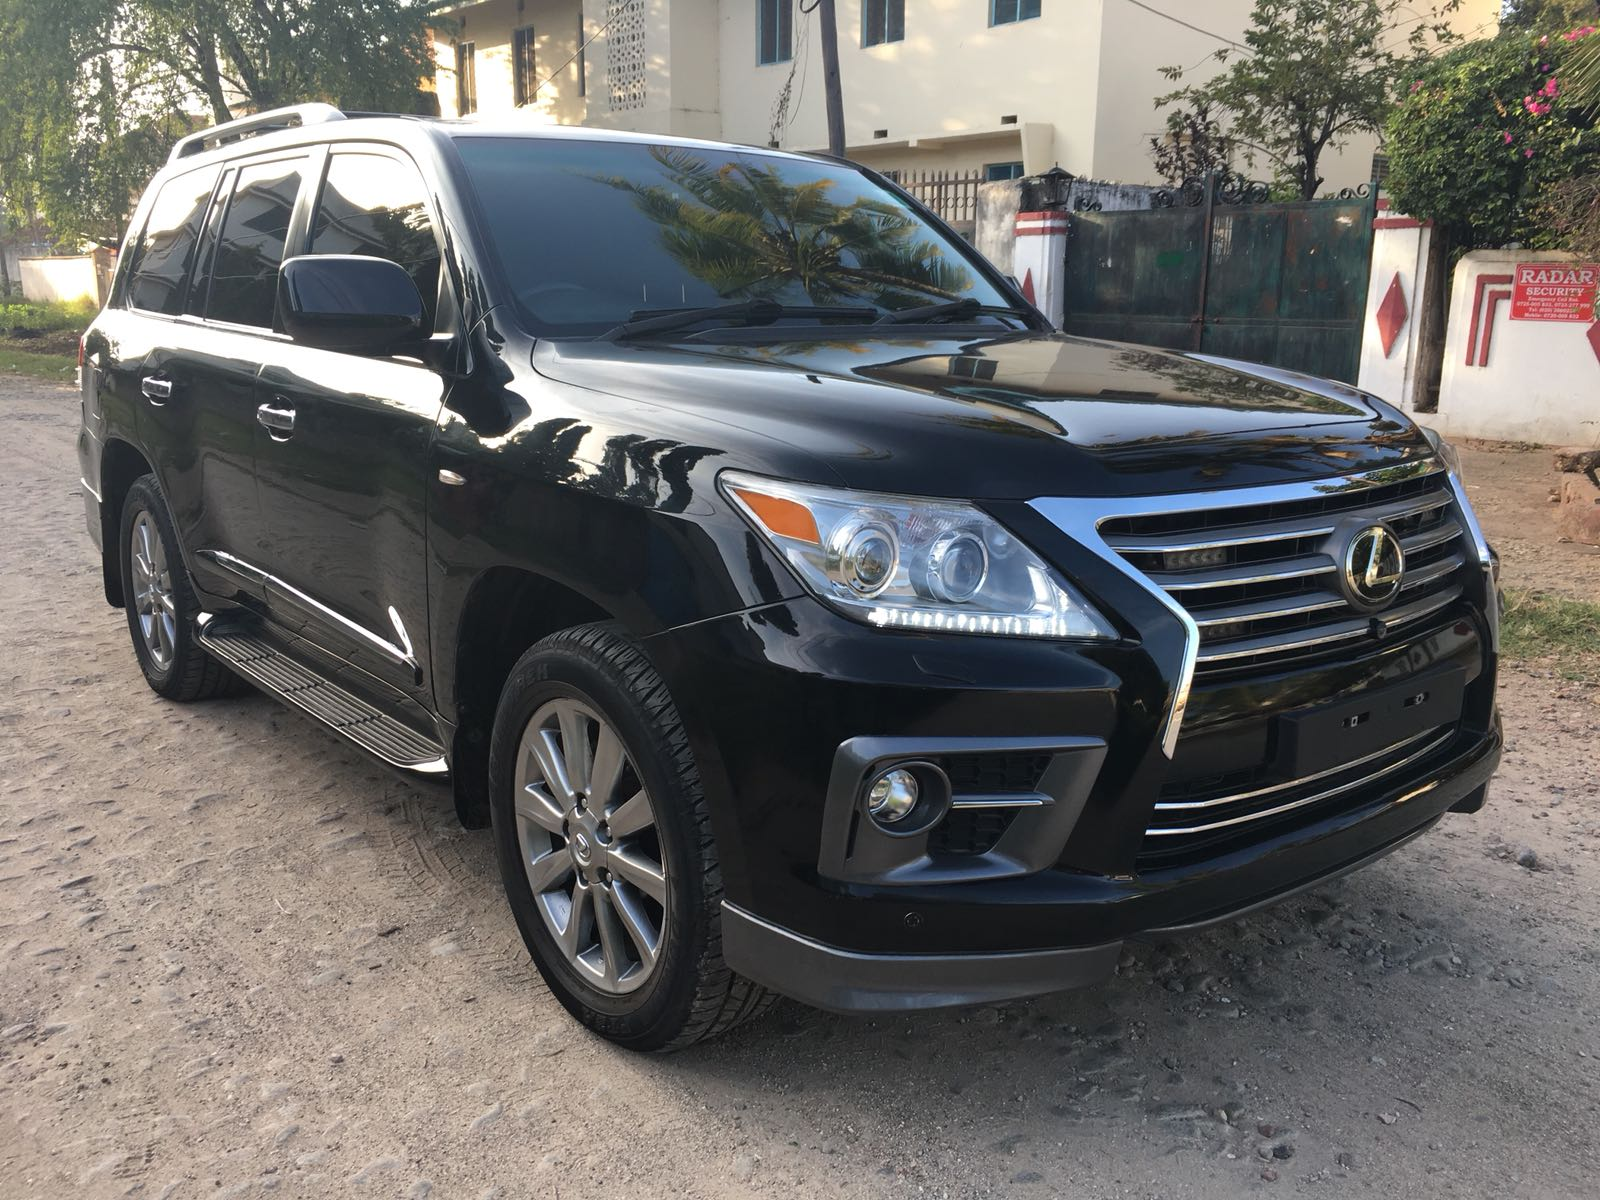 2010 LEXUS LX570 V8 PETROL FULL OPTION